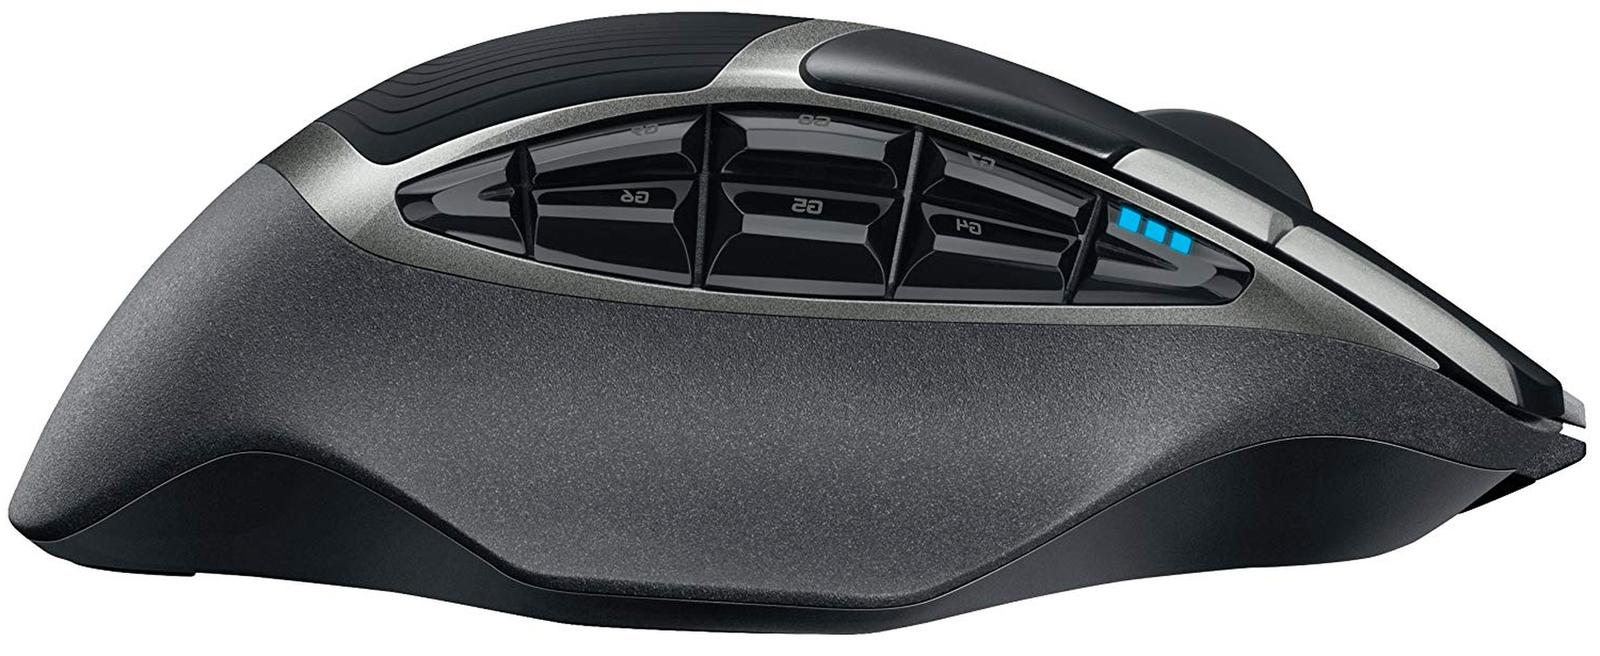 Logitech Mouse Buttons, Up to DPI